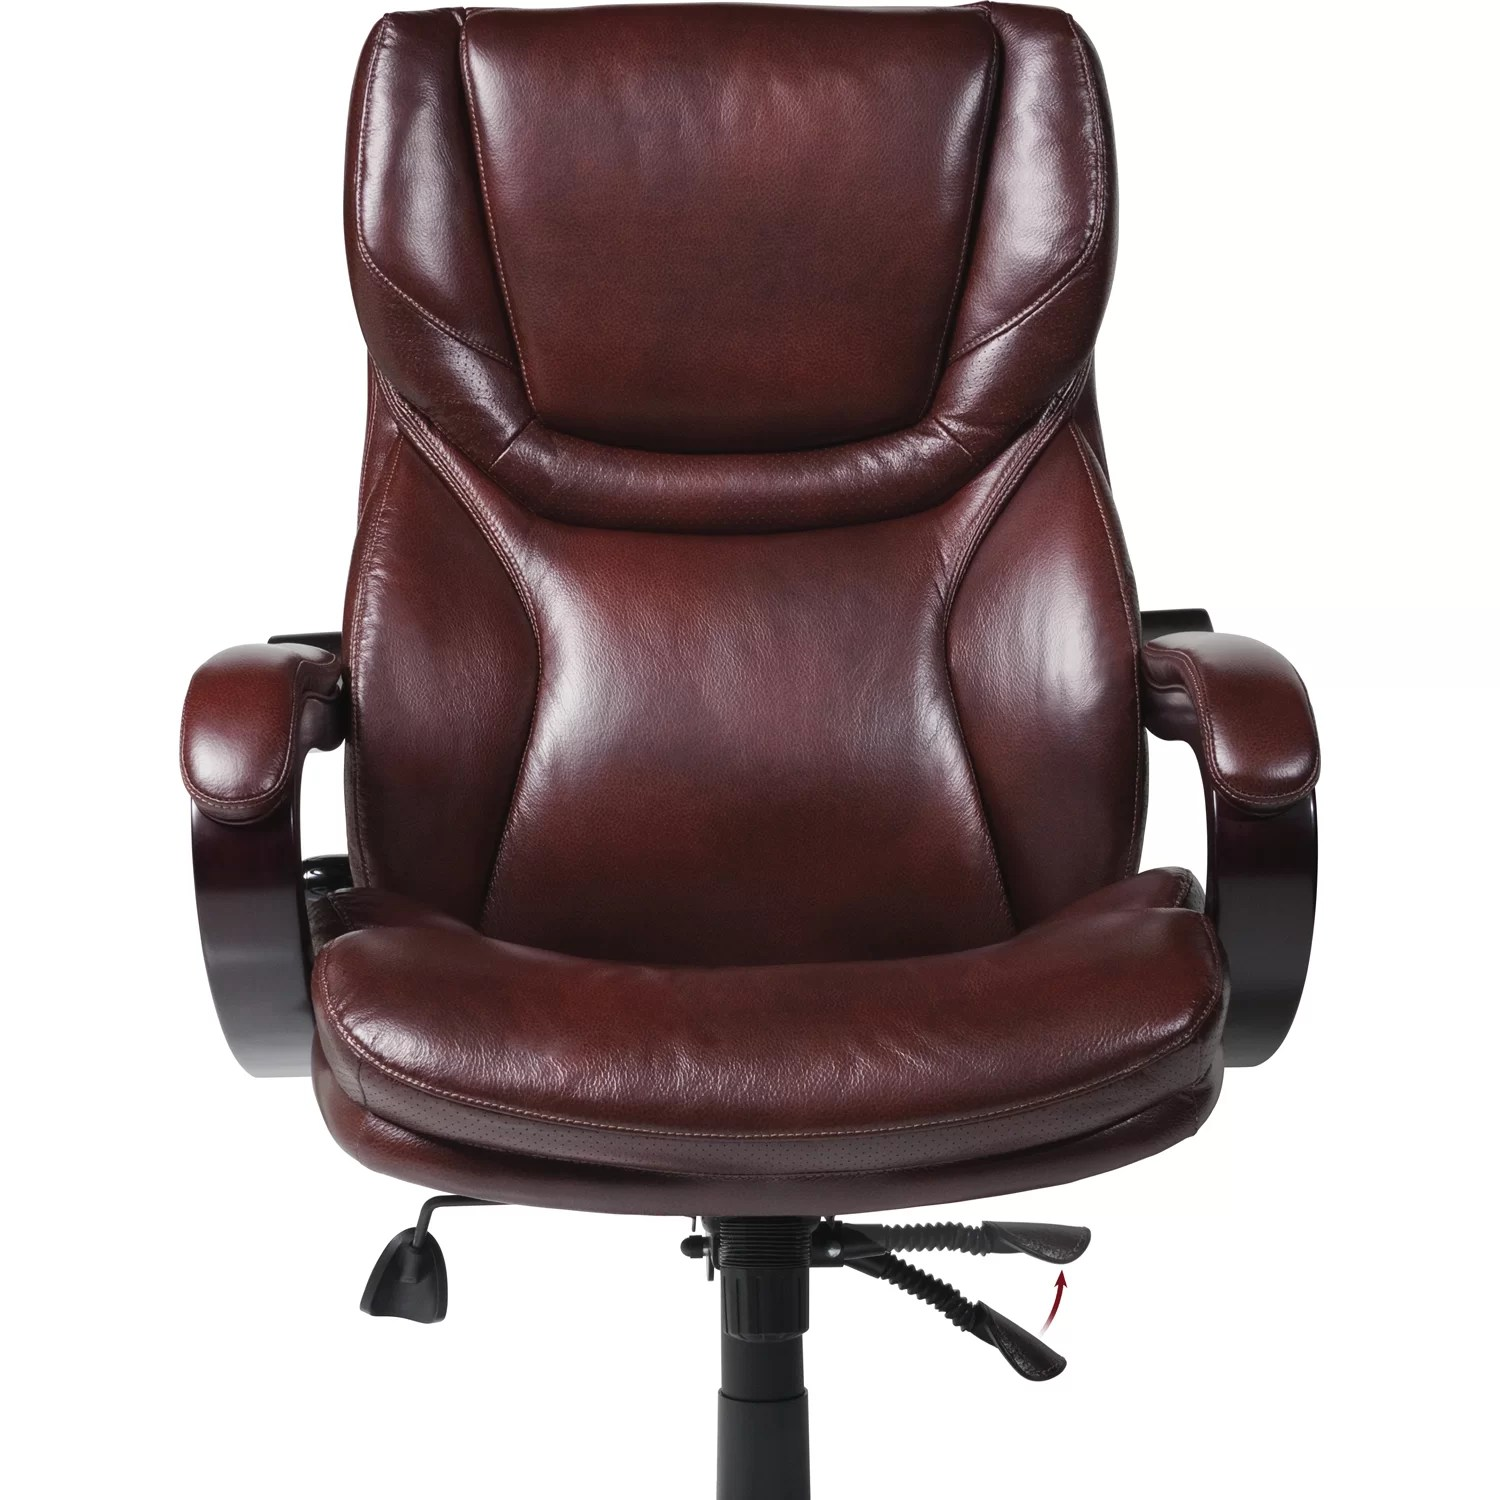 big and tall desk chairs ergonomic chair india online serta at home executive reviews wayfair